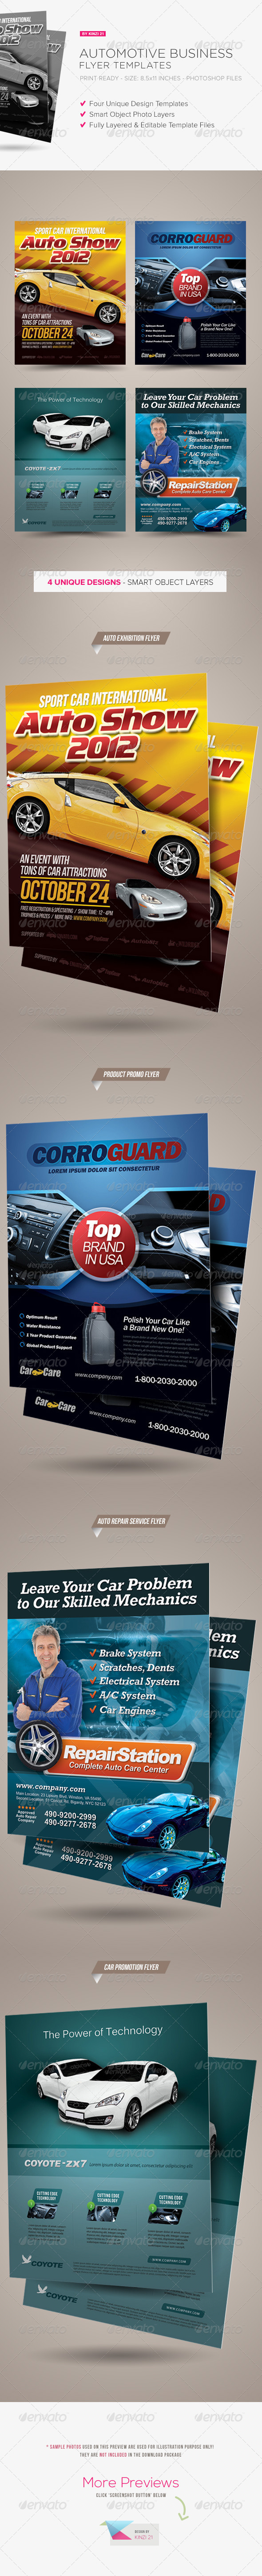 Premium Automotive Business Flyers - Corporate Flyers